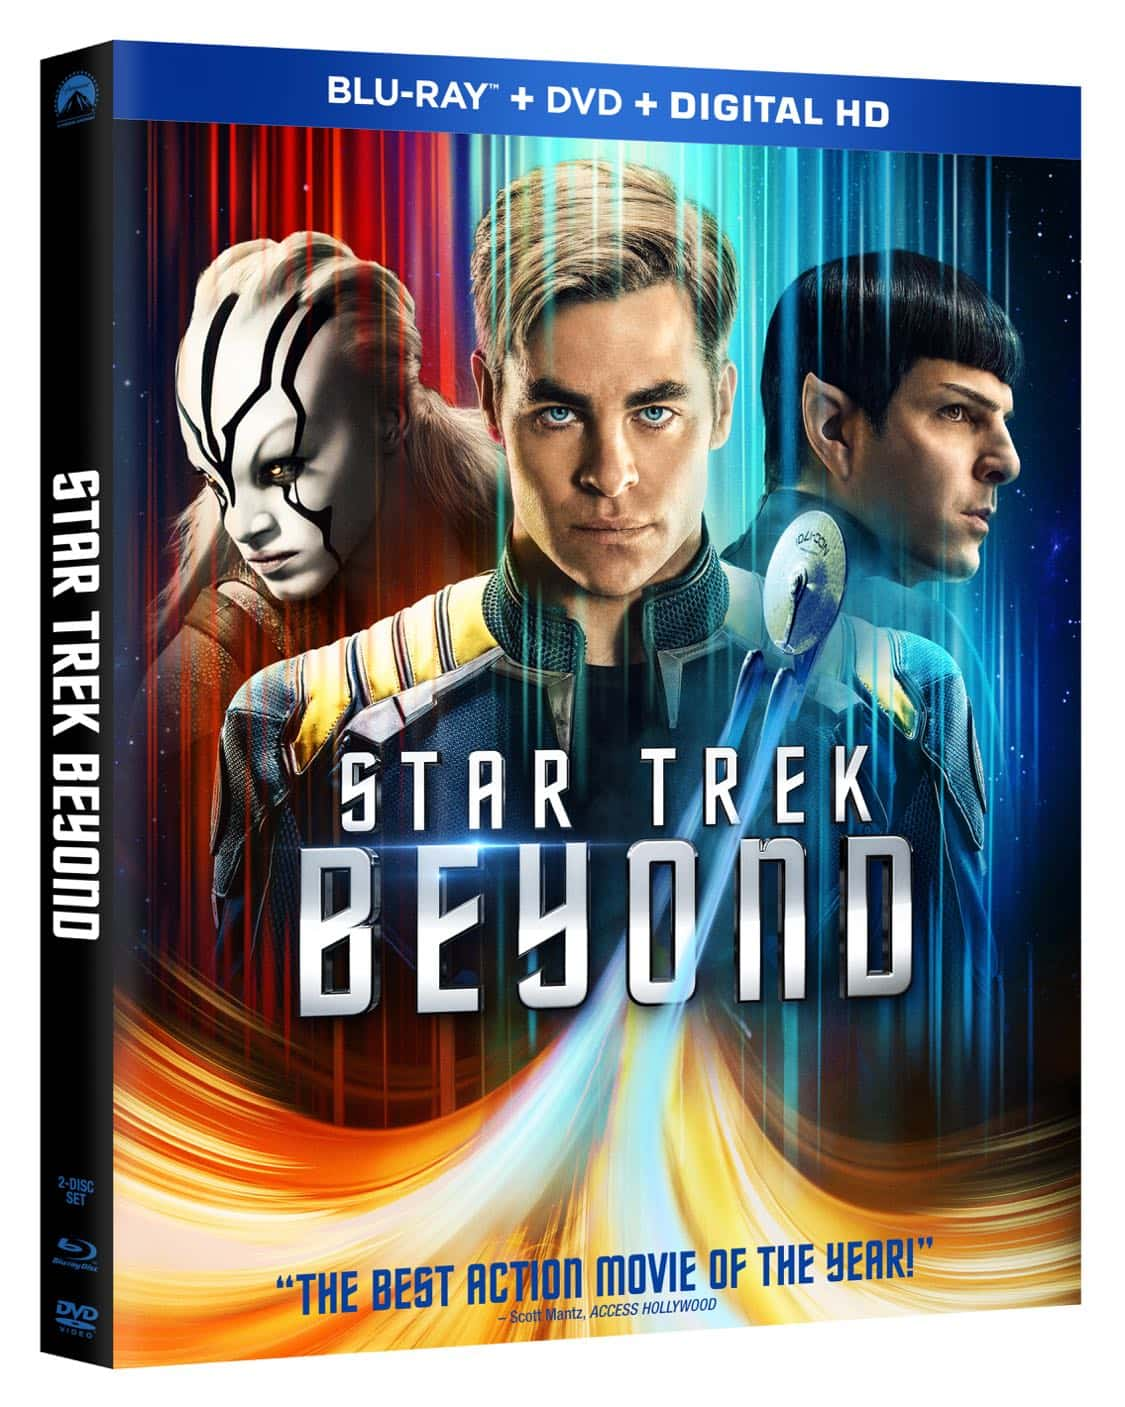 star-trek-beyond-blu-ray-and-dvd-release-details-1